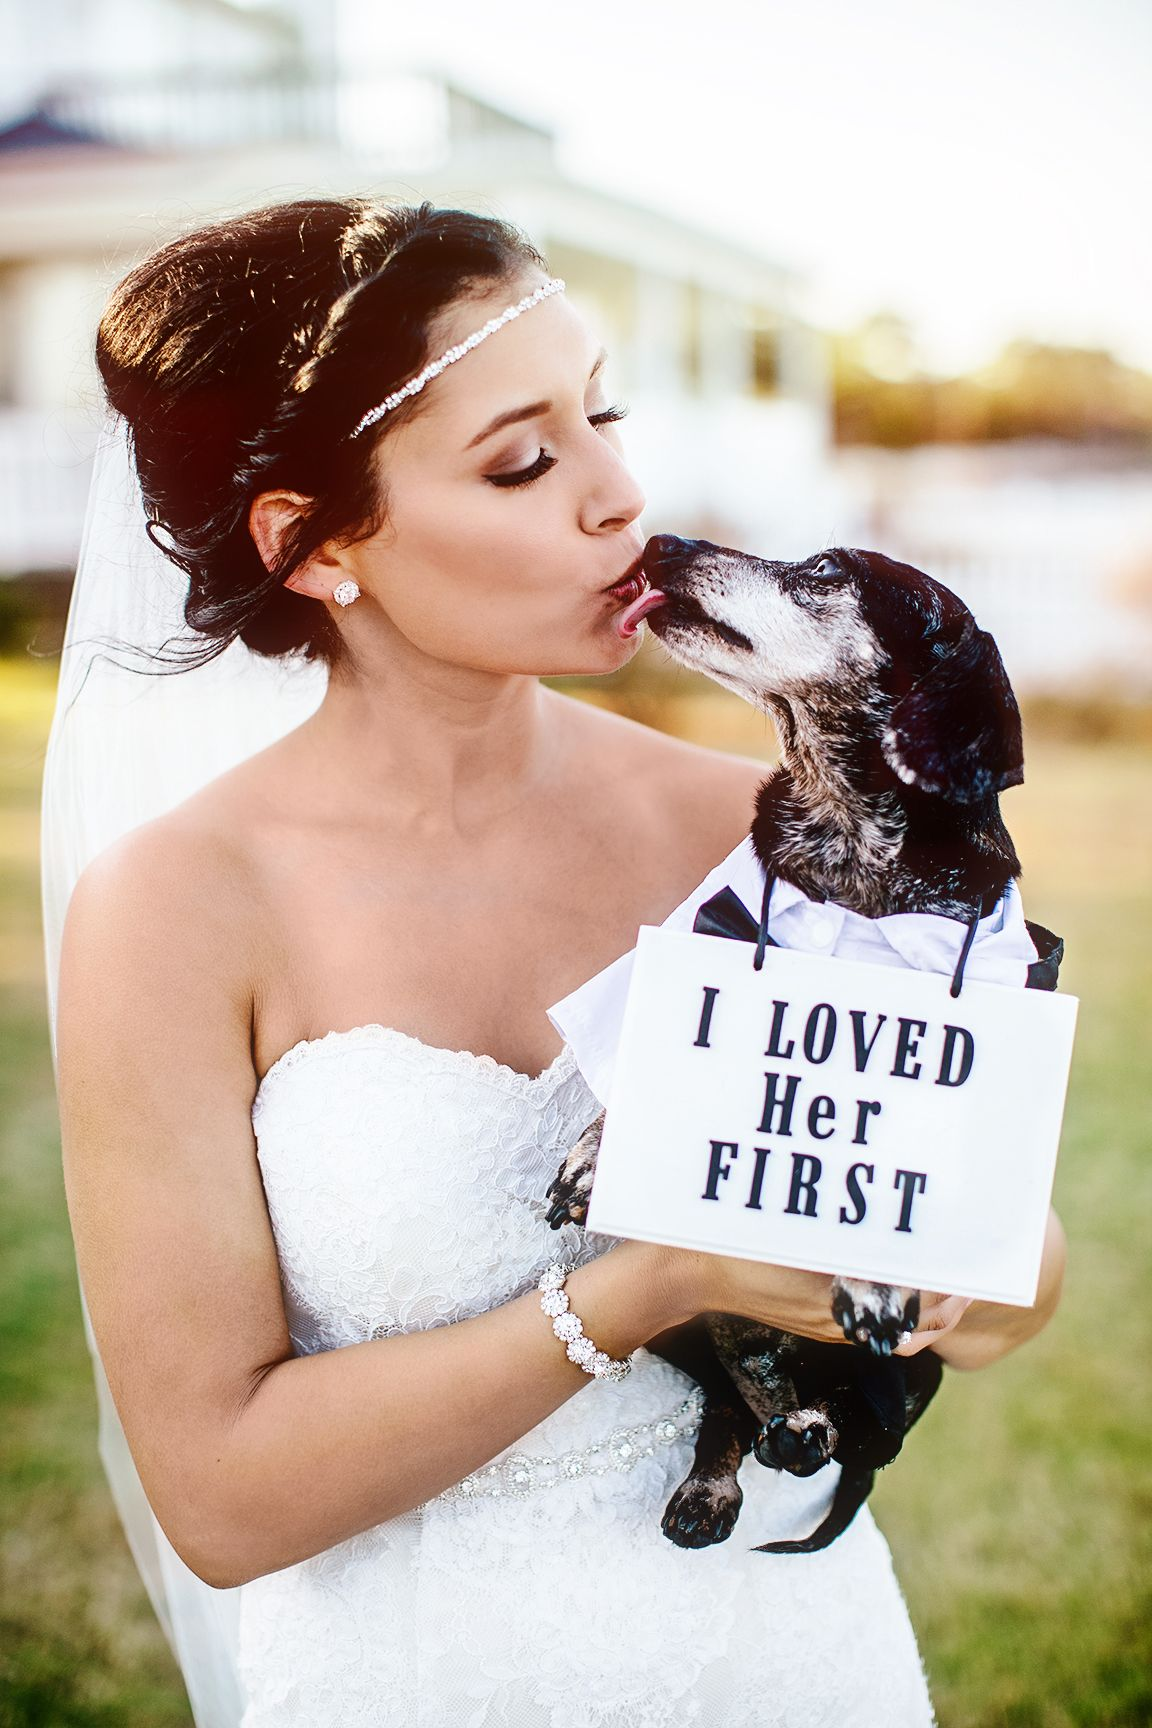 8 Best Dog Wedding Ideas - How to Include Your Dog in Your Wedding